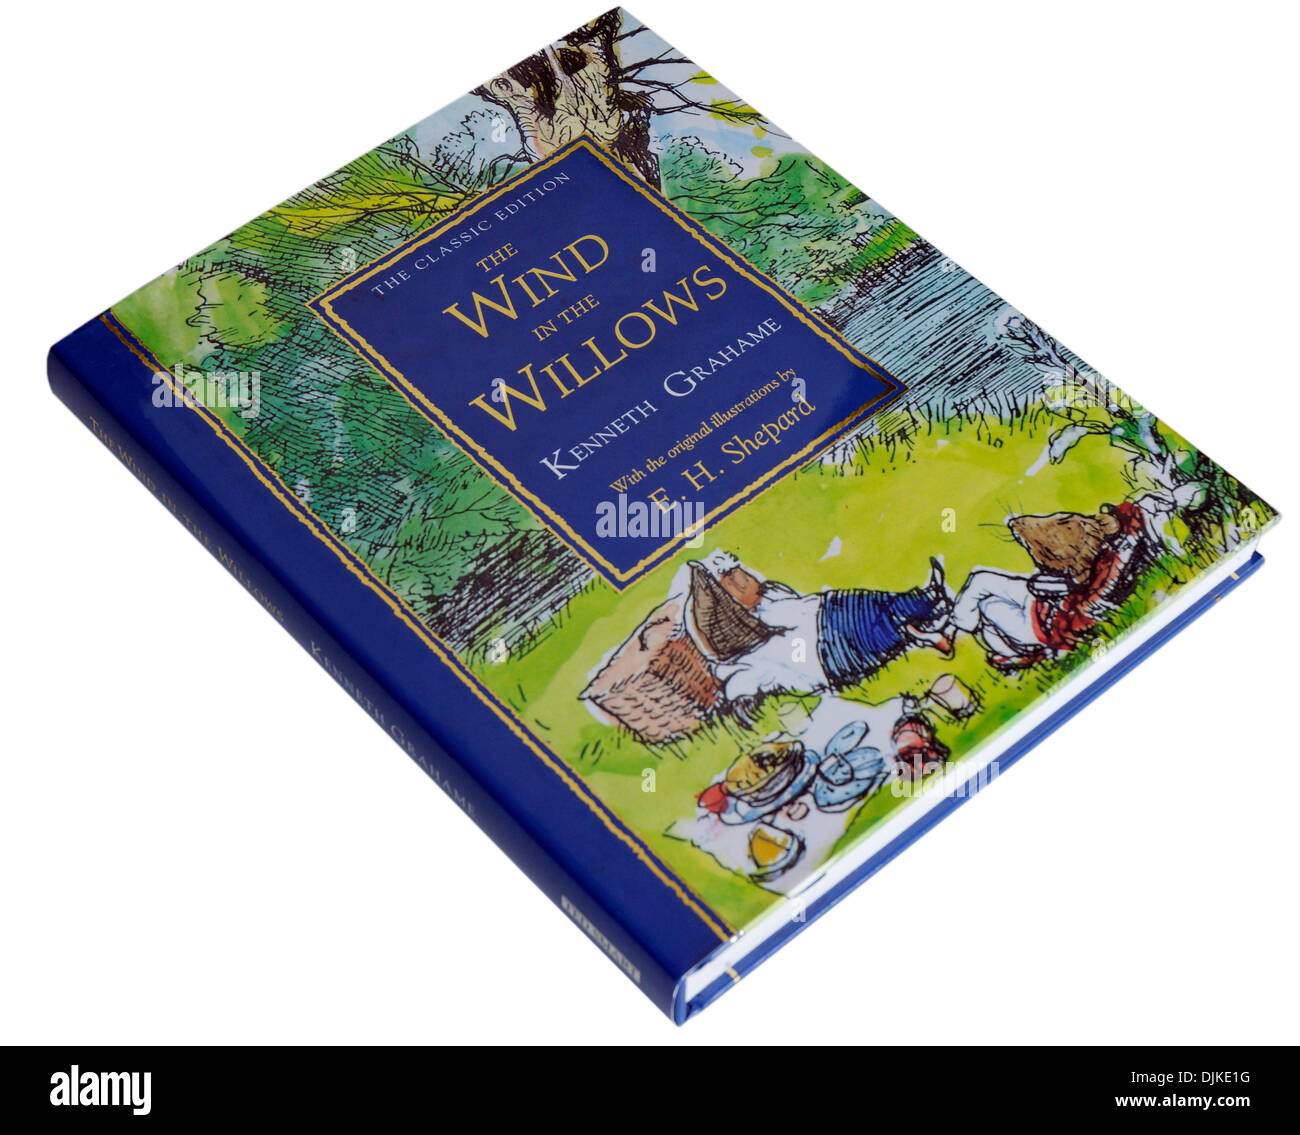 Wind in the willows ornaments - A Lovely Eh Shepard Illustrated Edition Of The Wind In The Willows By Kenneth Grahame